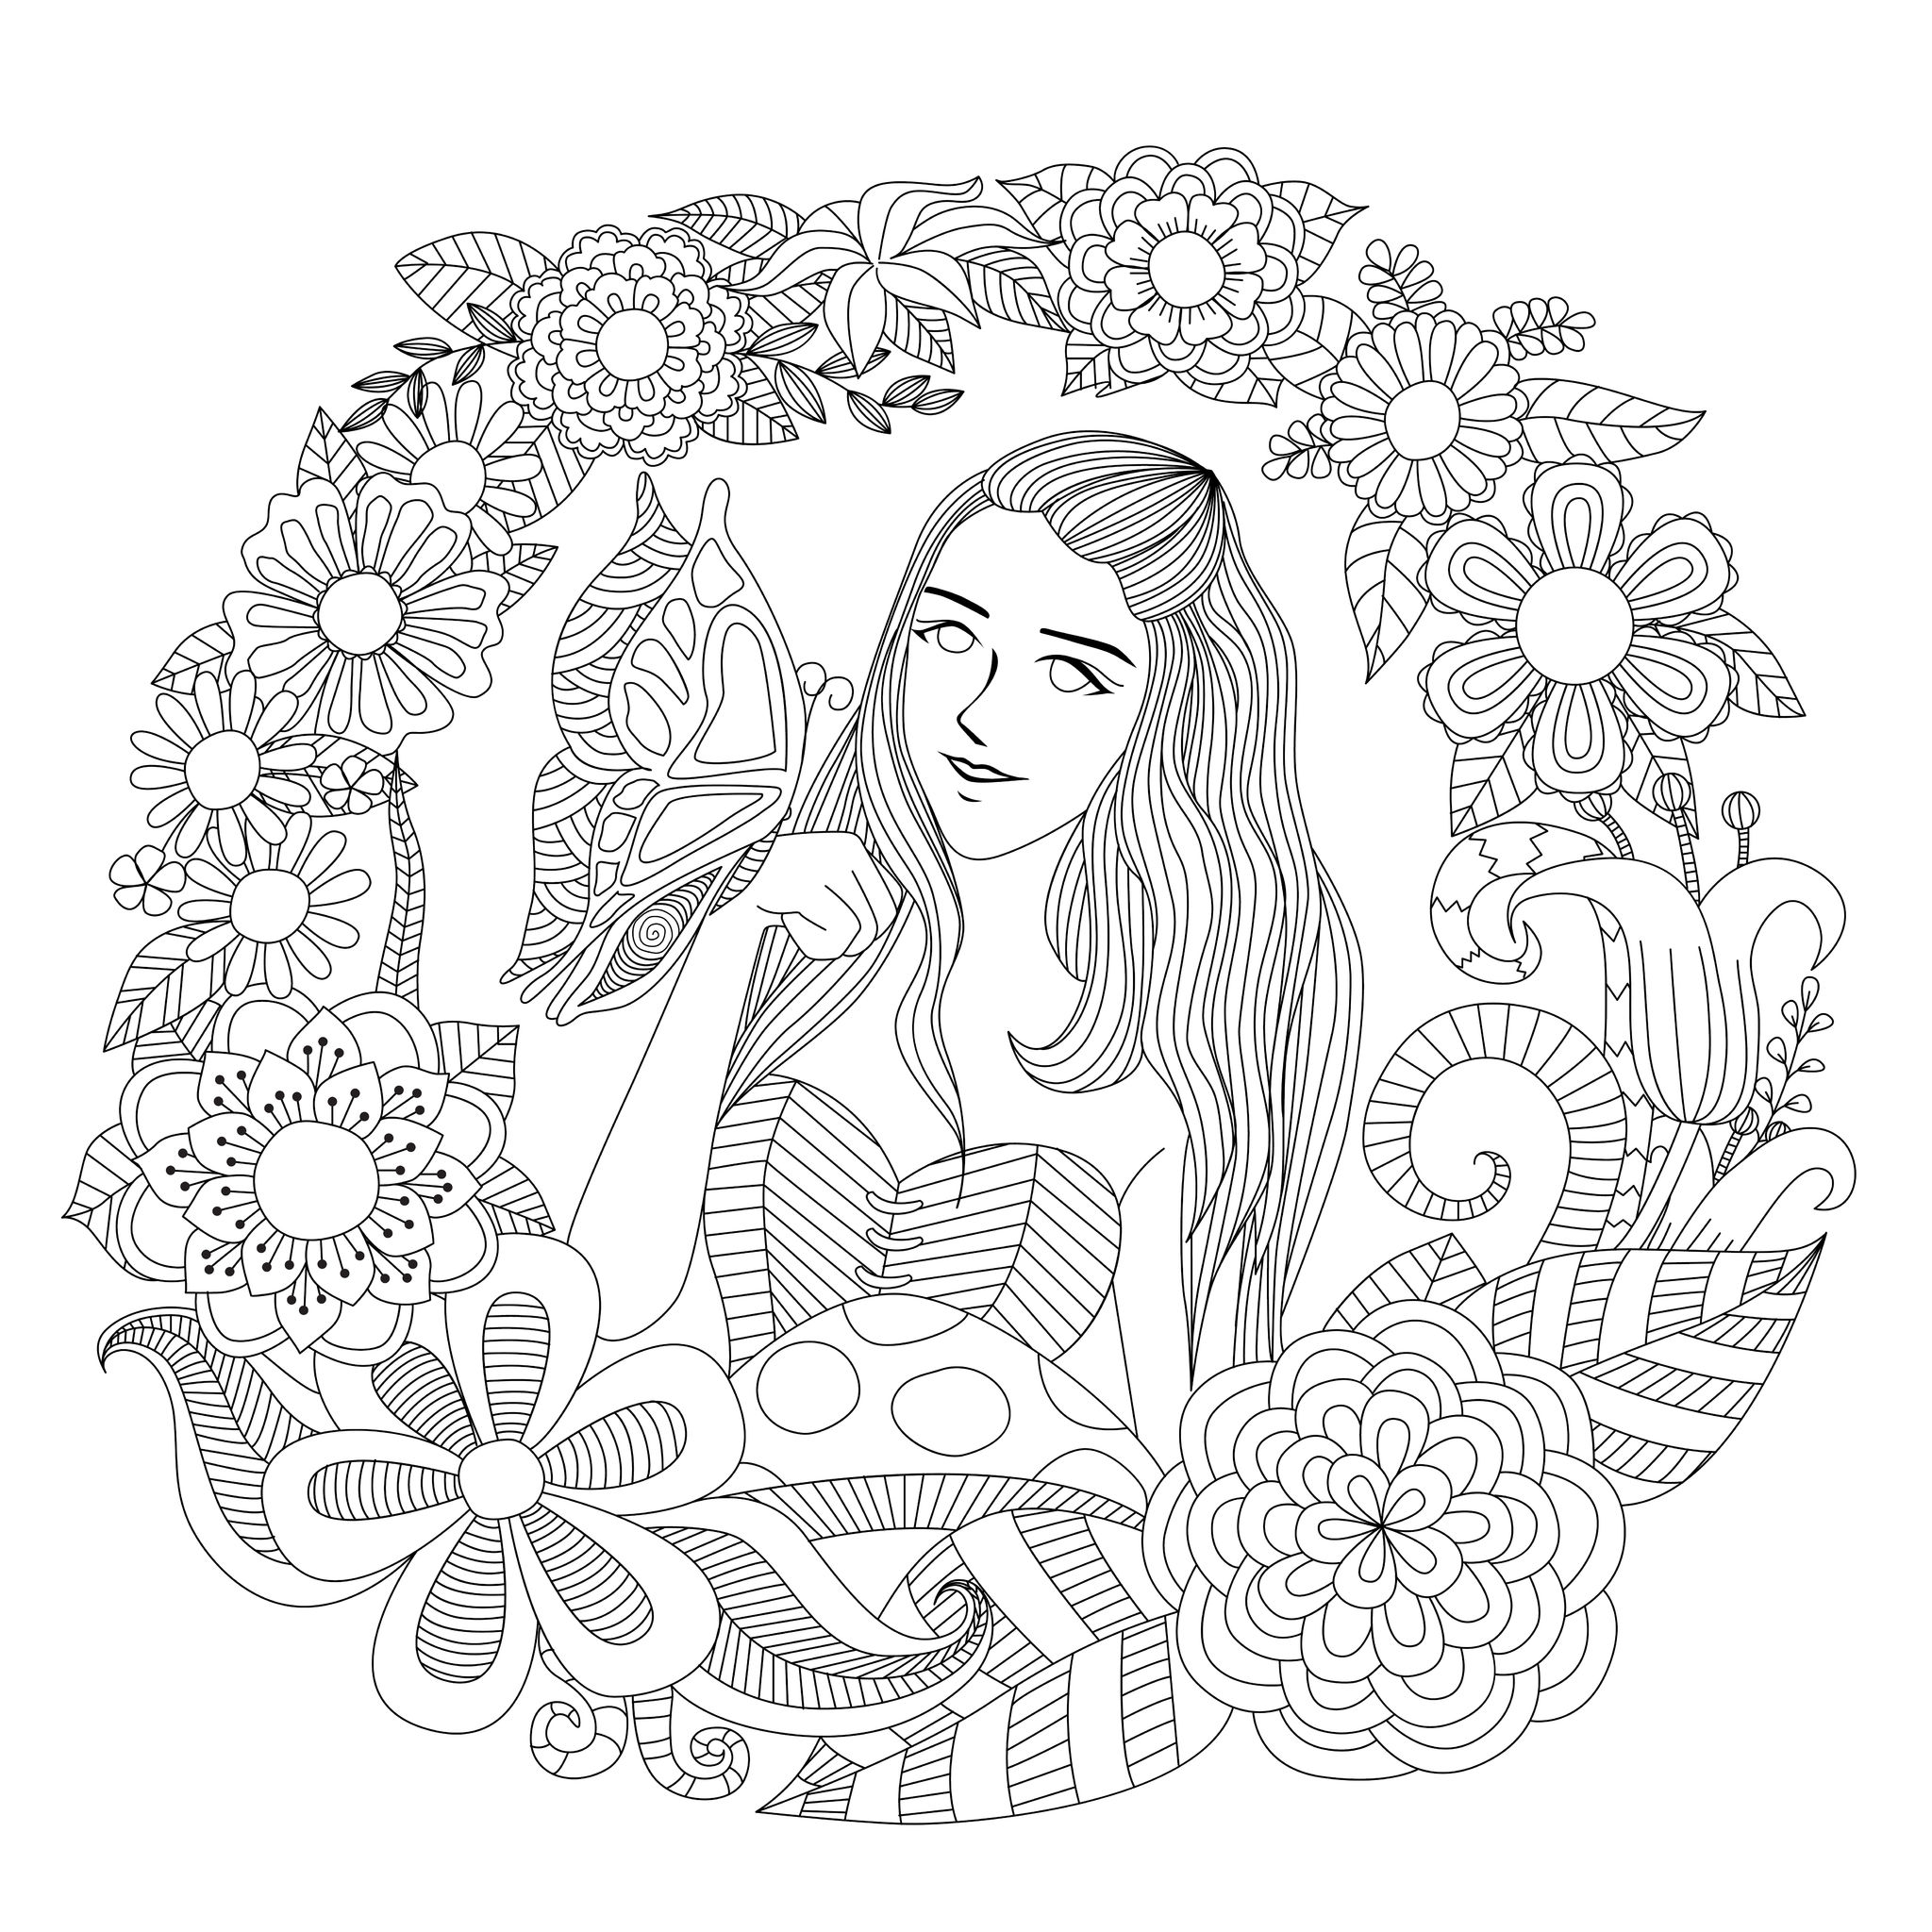 Anti stress colouring pages for adults - Butterfly Girl A Fantastic Flowered Adult Coloring Page From The Gallery Zen